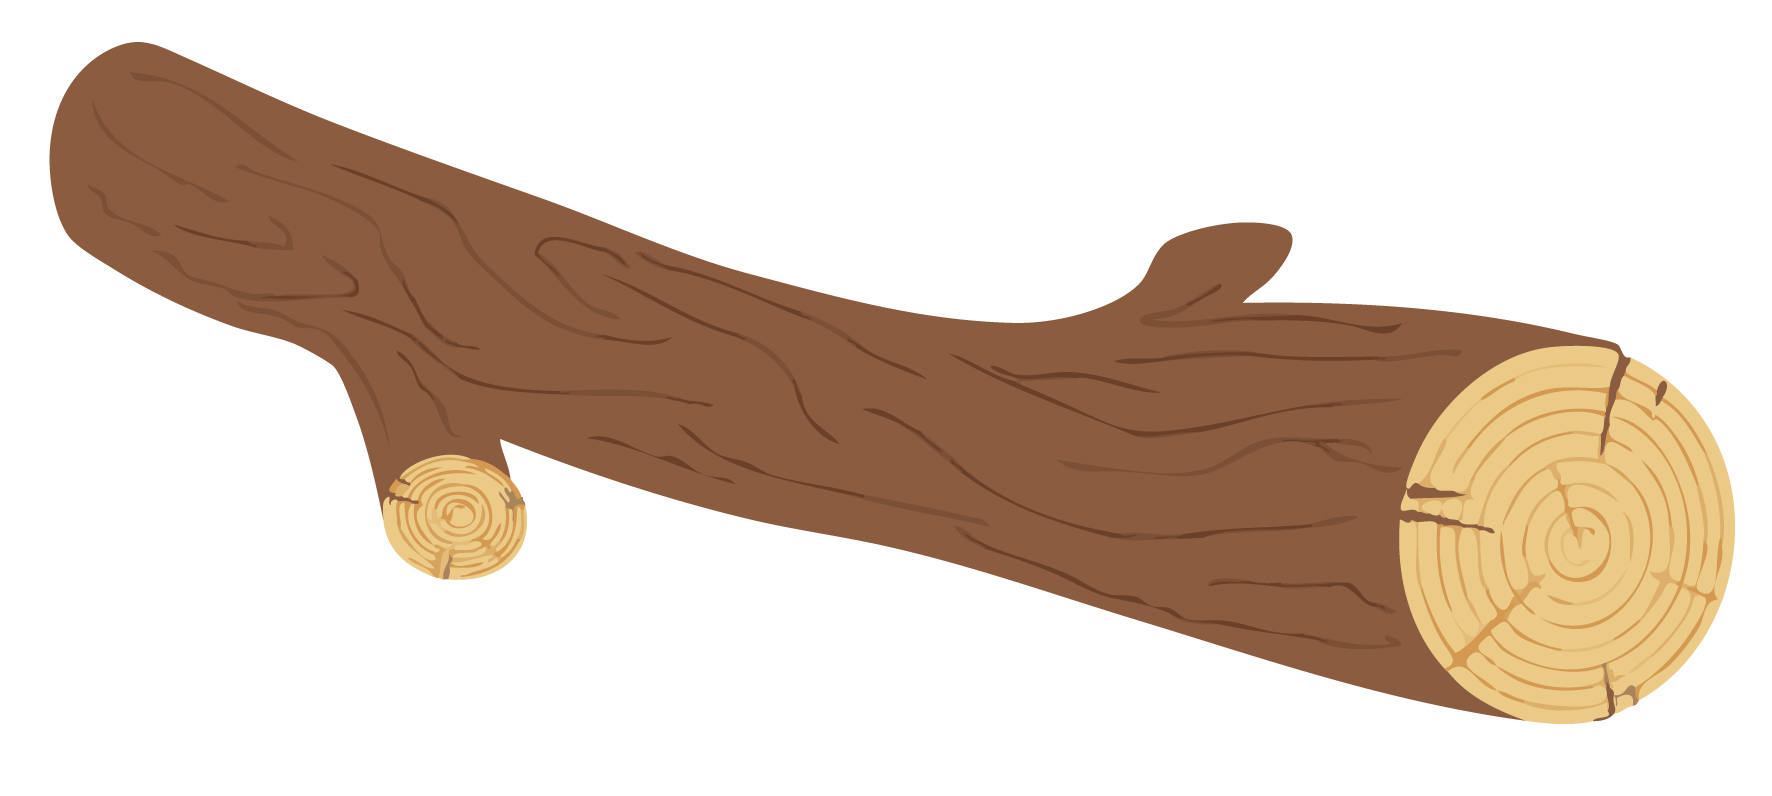 Wood clipart hollow log Log Log clip download free